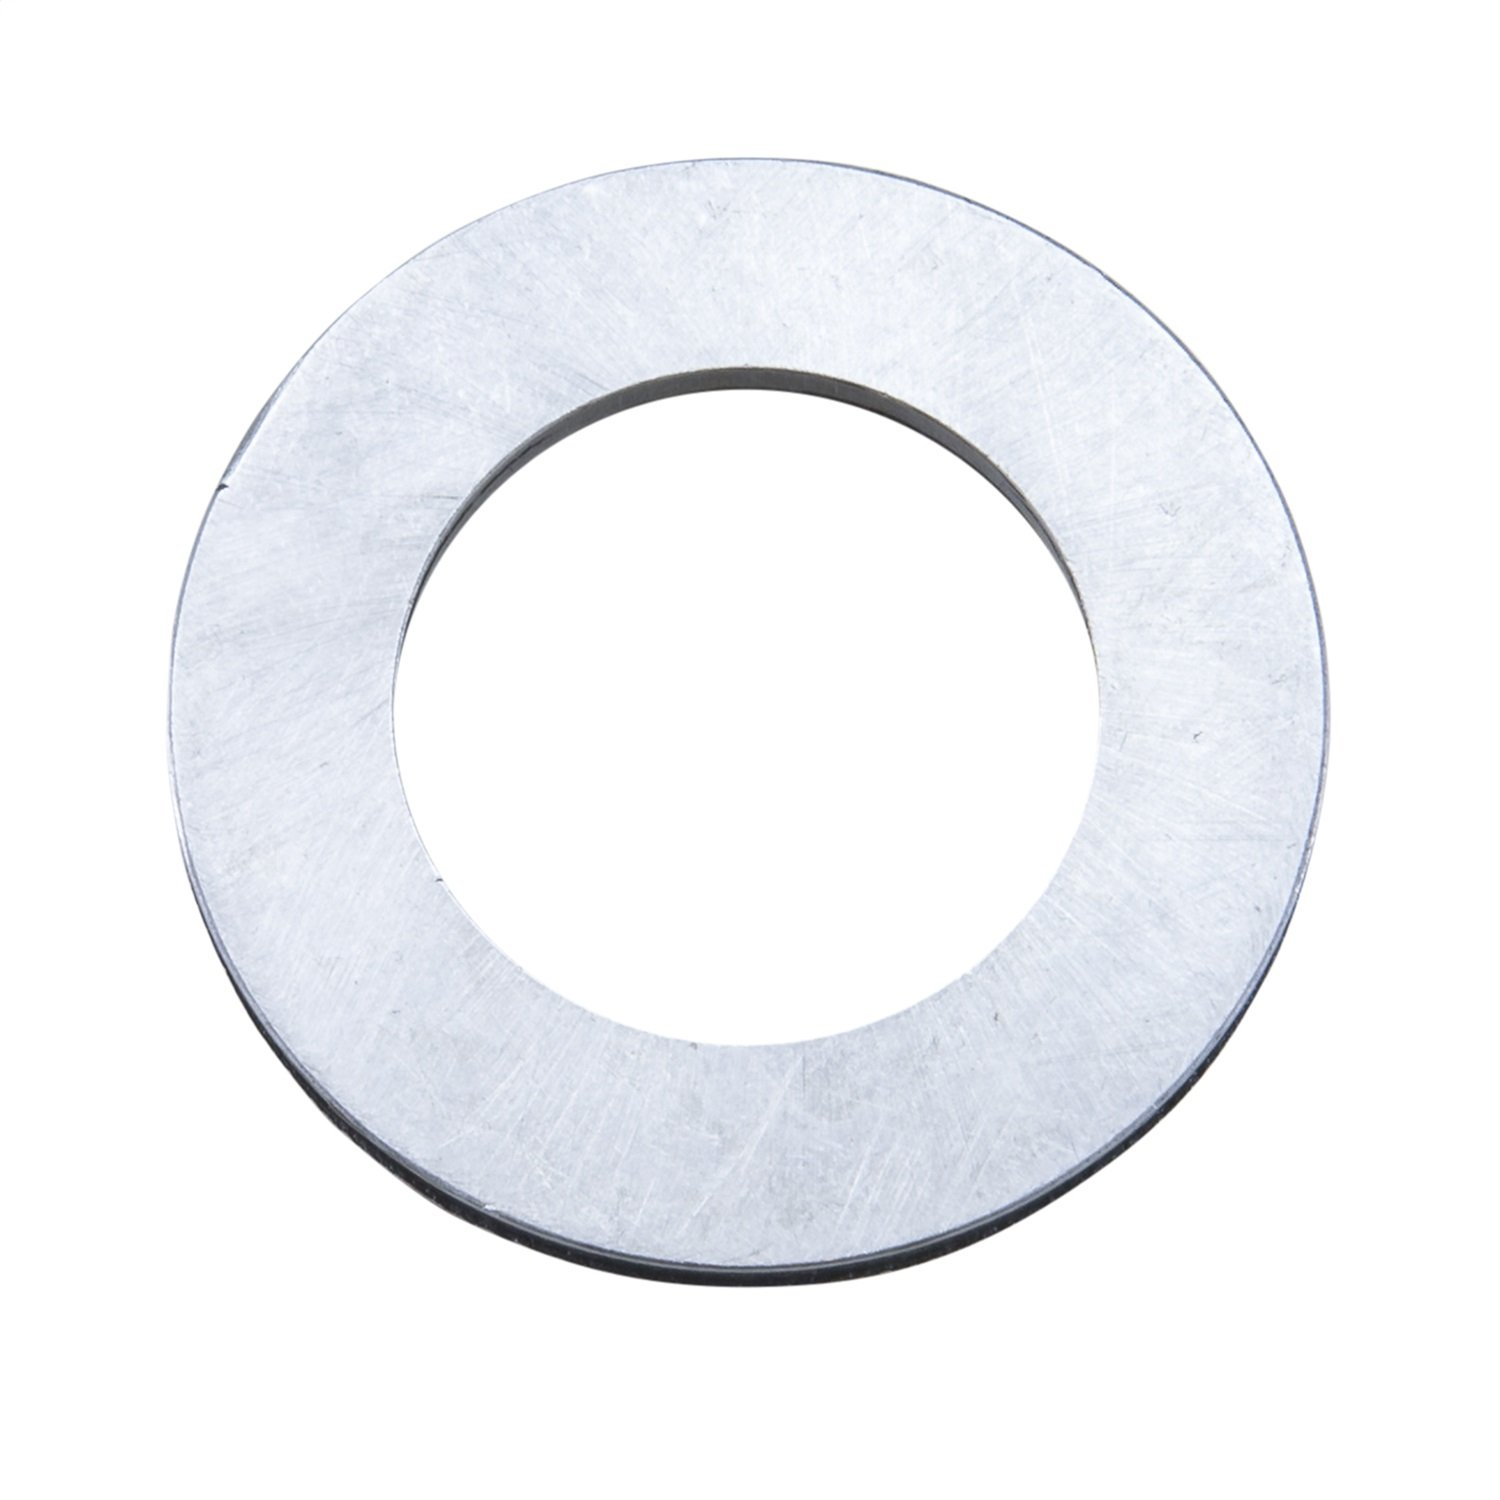 Yukon (YSPPN-031) Replacement Pinion Nut Washer for Dana 80 Differential